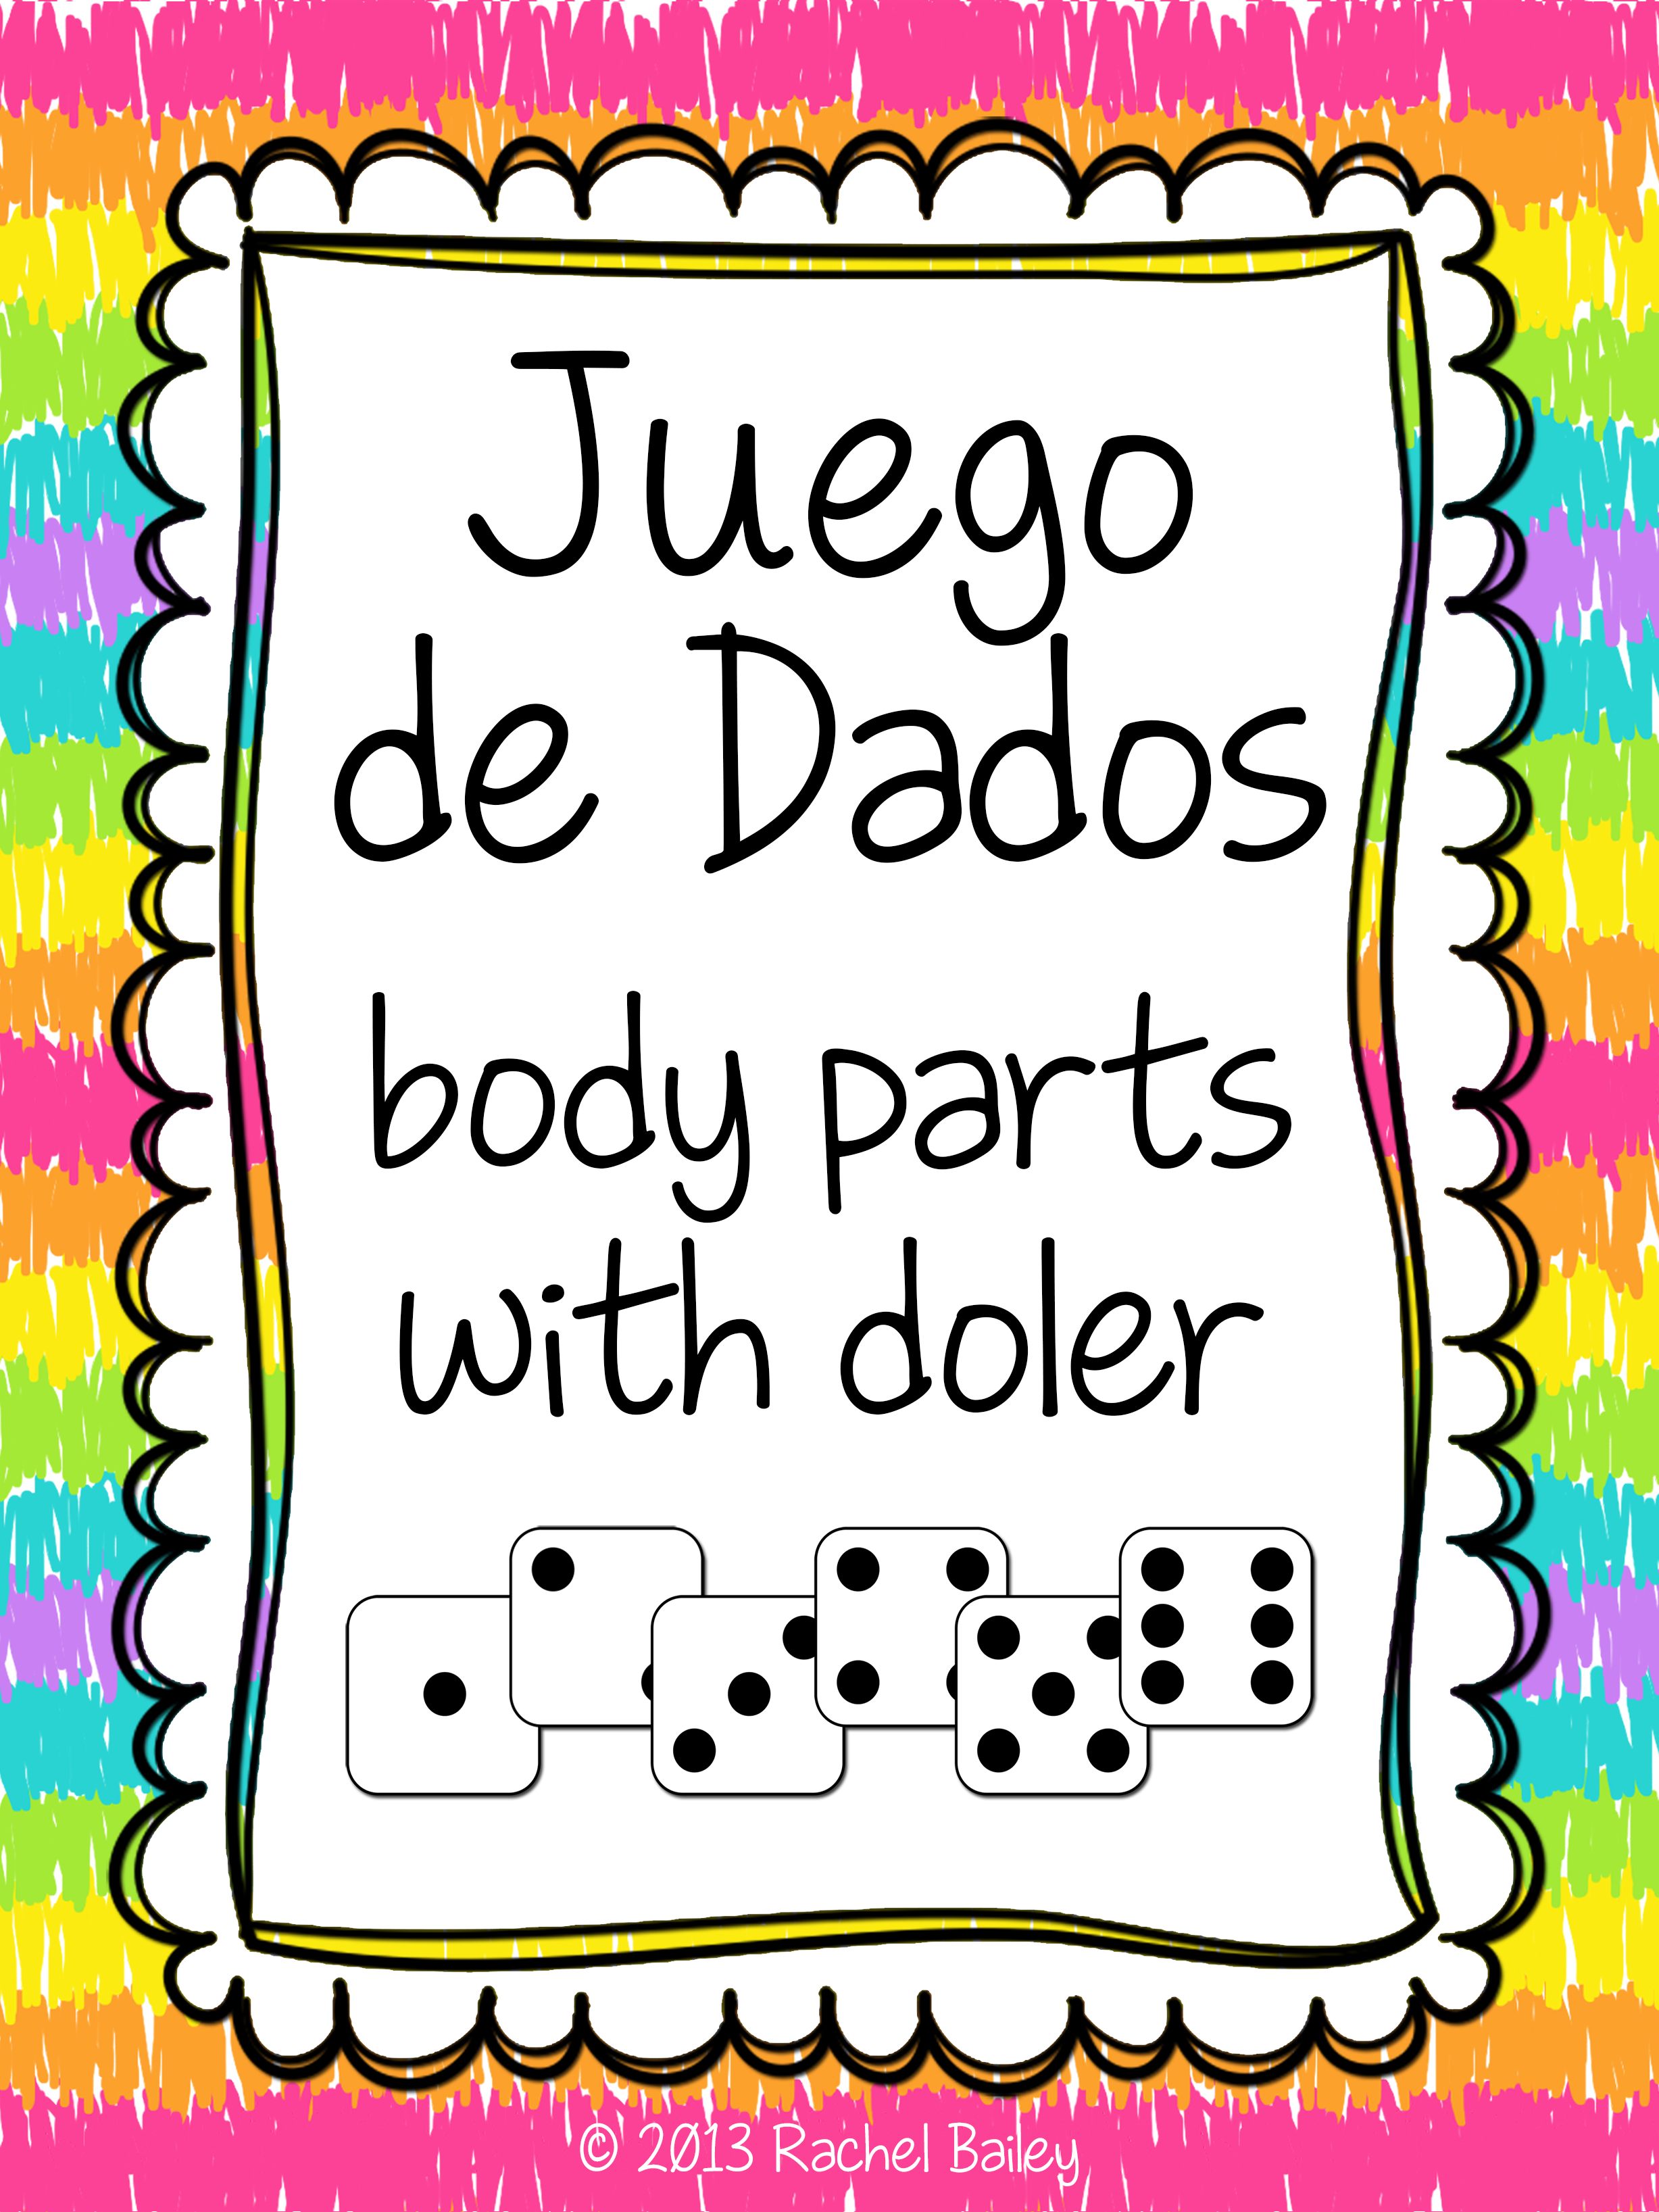 Pin On My Tpt Store And Blog For Spanish Teachers [ 3273 x 2455 Pixel ]